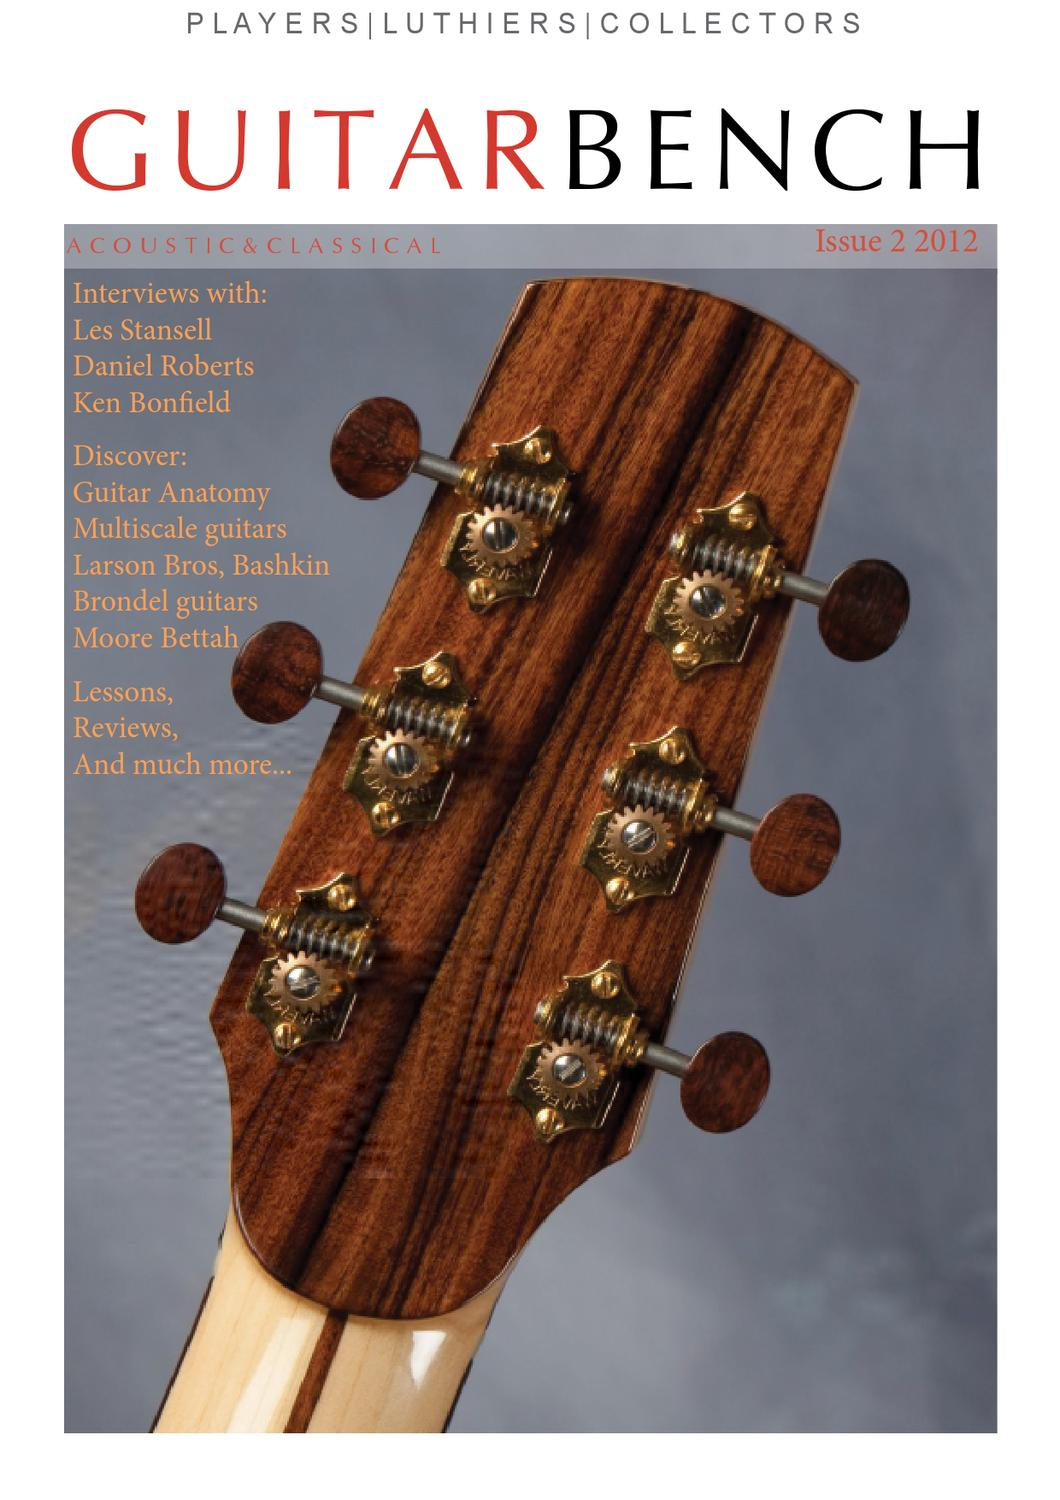 Guitarbench Magazine Issue 2 by Terence Tan - issuu